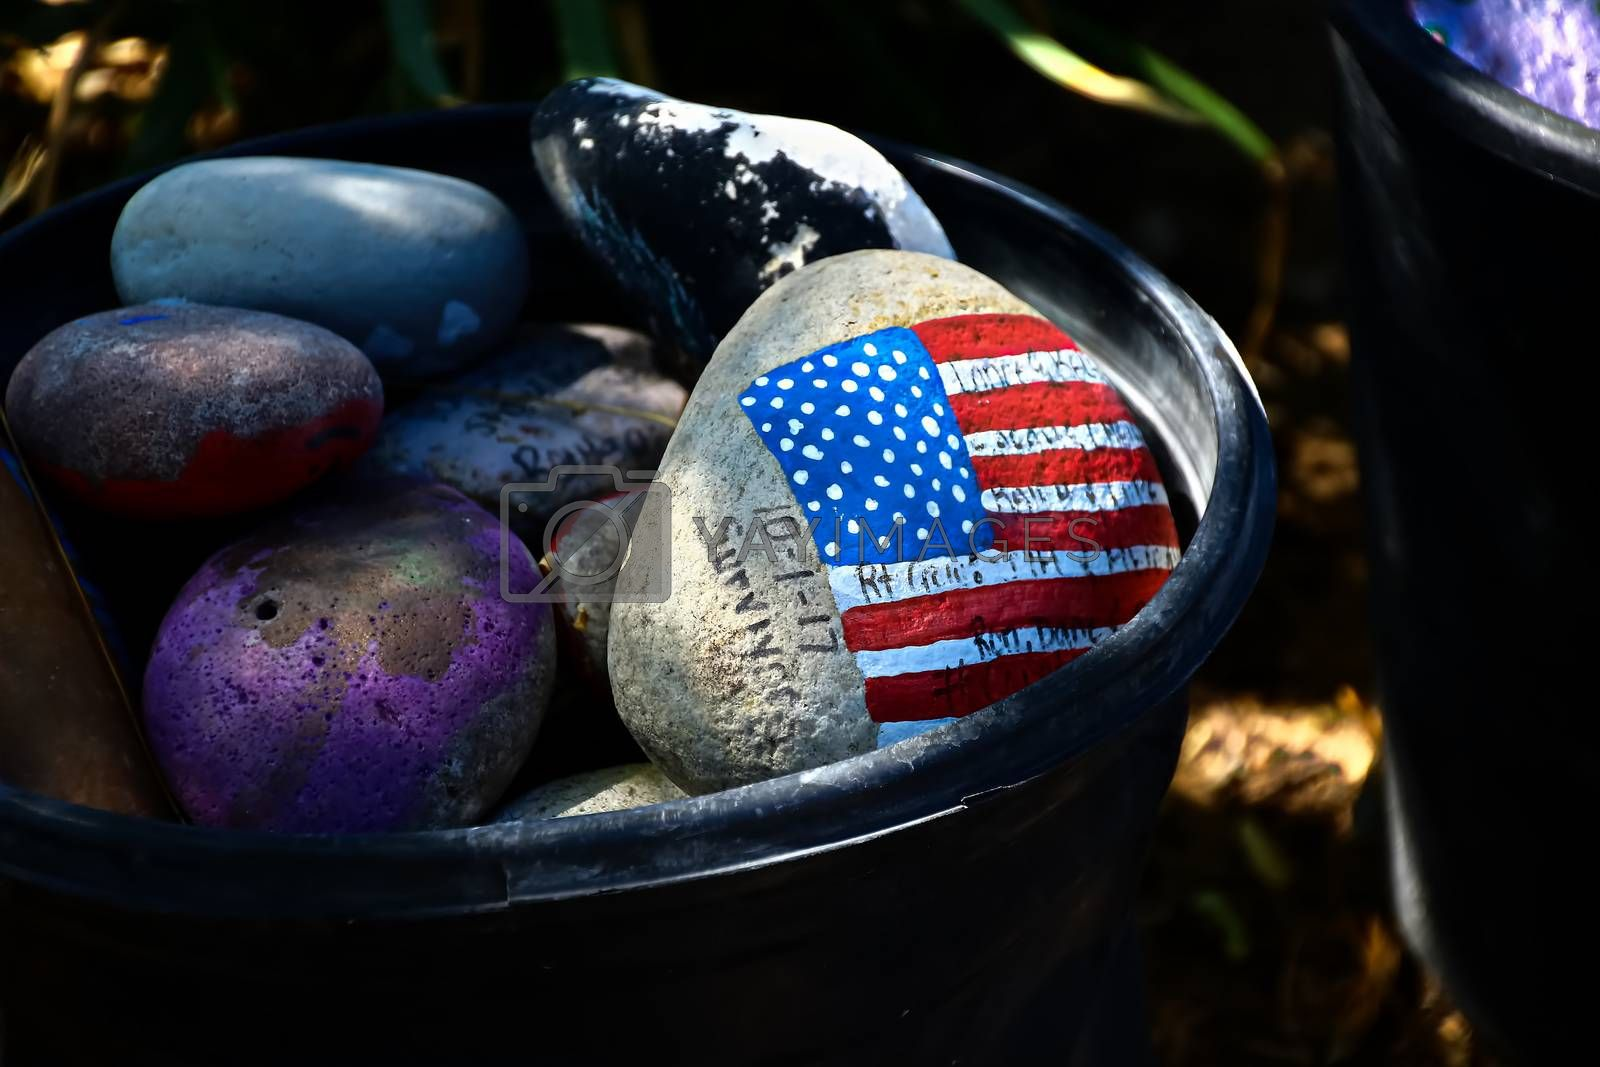 rock painted with the American Flag.American flag painted on a gray stone.Close-up of rock with American flag painted.